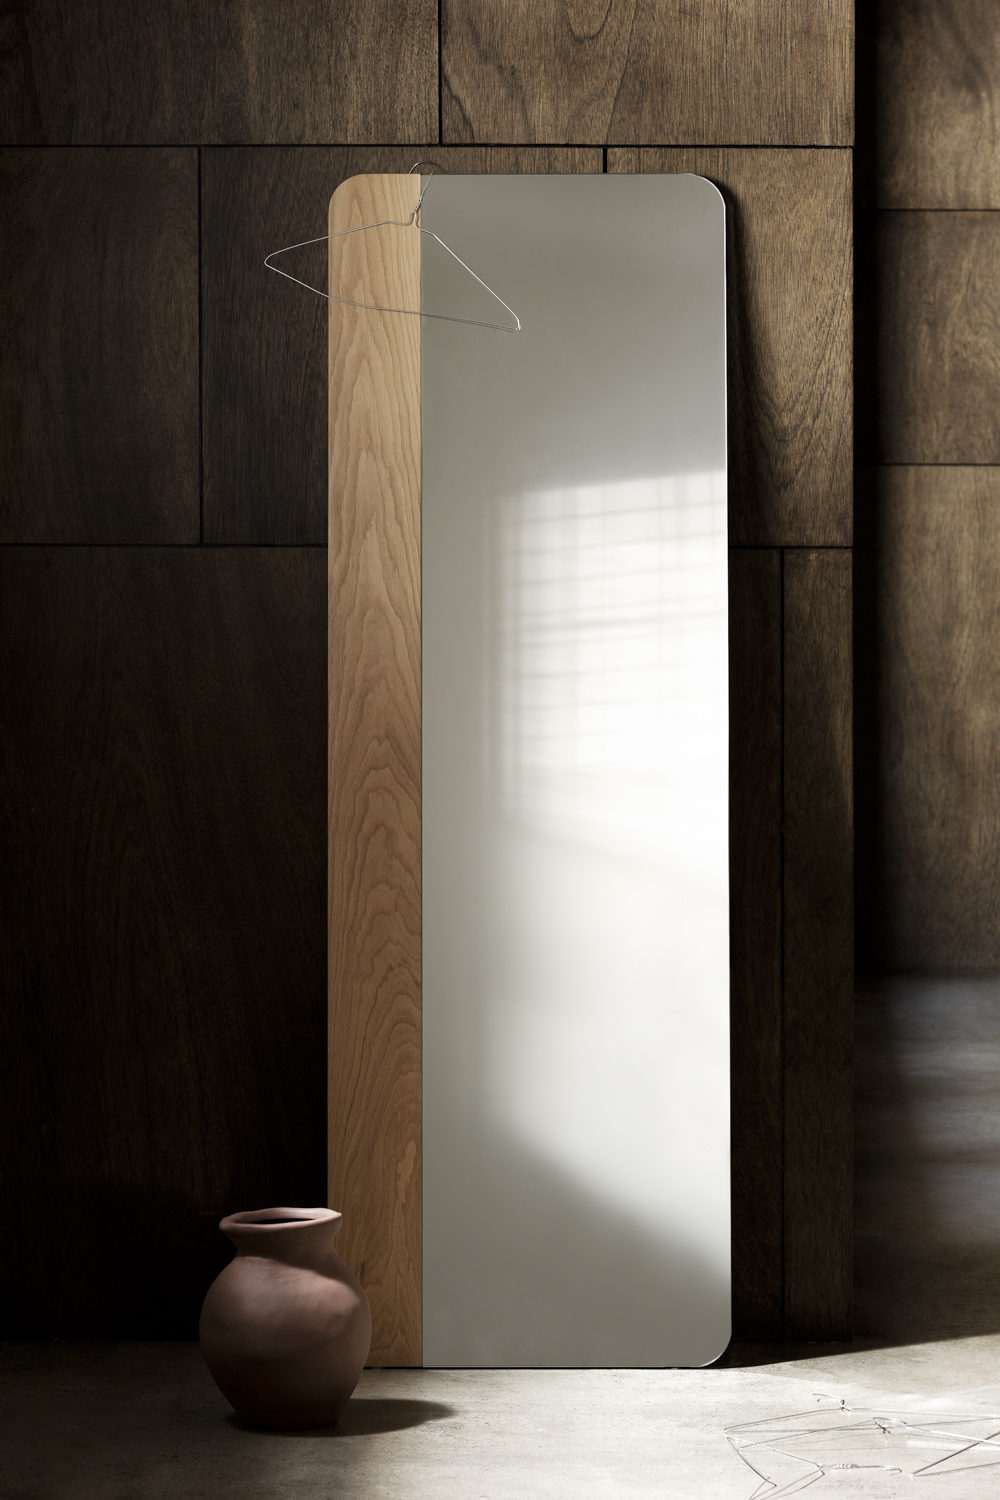 Narcisse mirror - Sleek lines and a minimalist and soft look. The warmth of timber creating a beautiful contrast with the mirror.